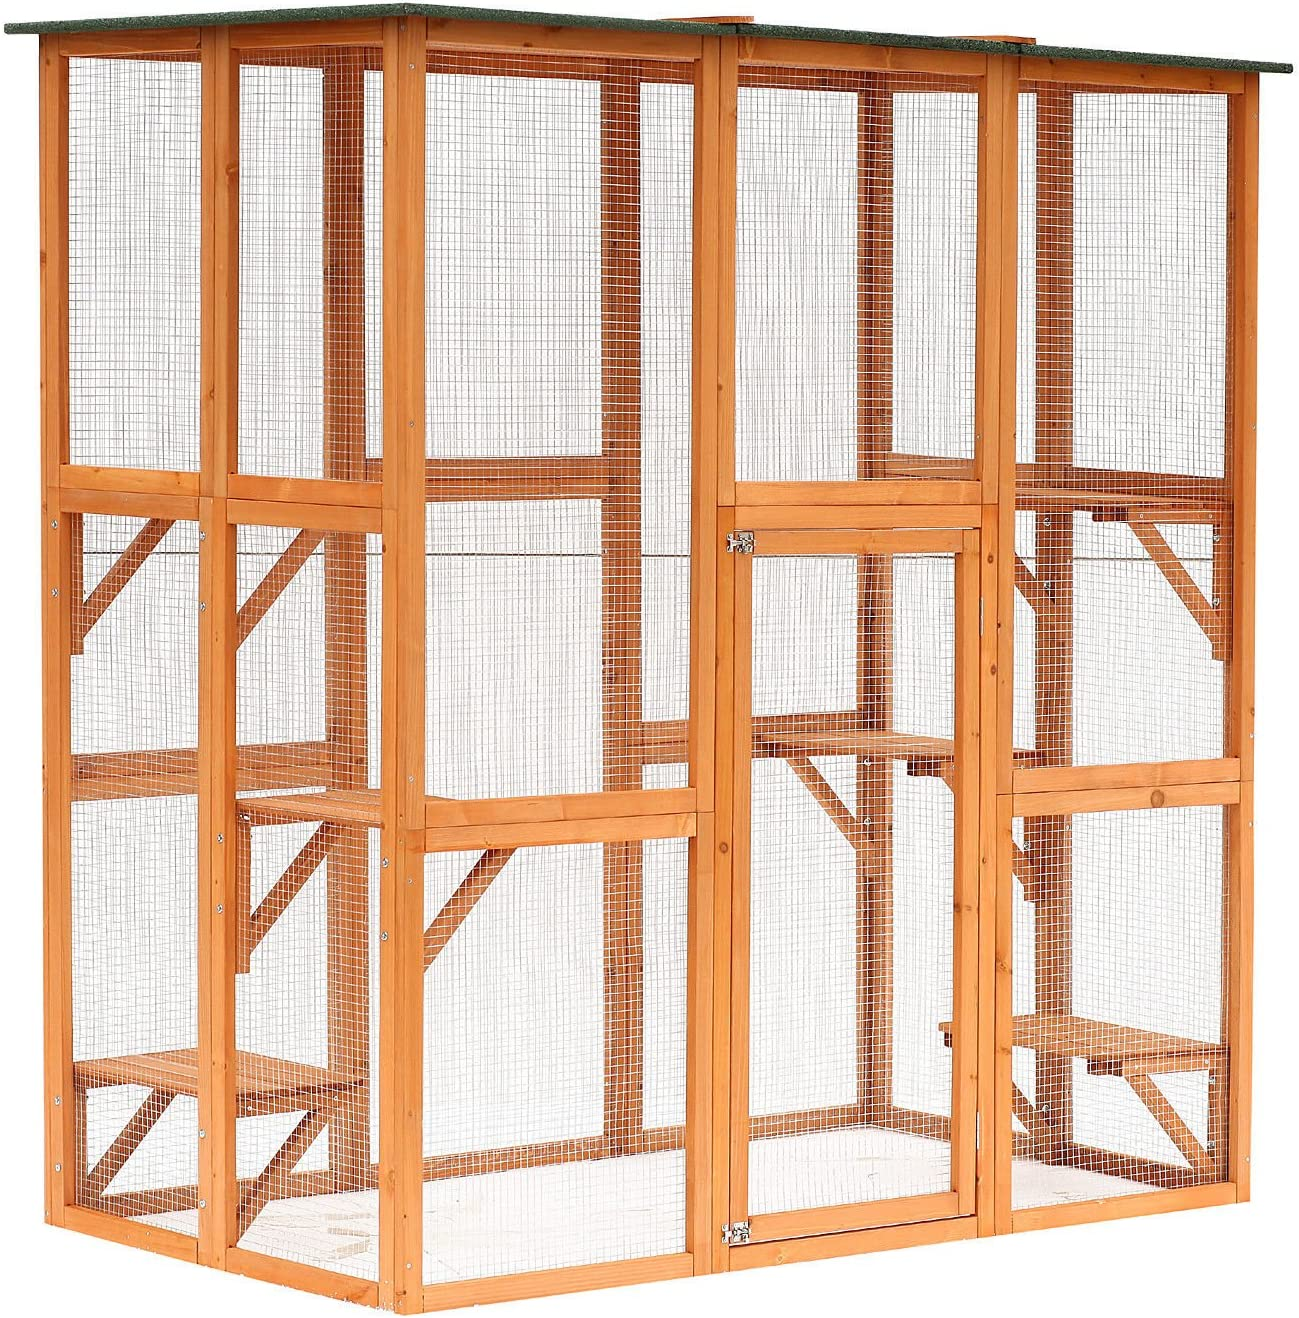 """PawHut 71"""" x 39"""" x 71"""" Large Wooden Outdoor Cat Enclosure Catio Cage with 6 Platforms"""